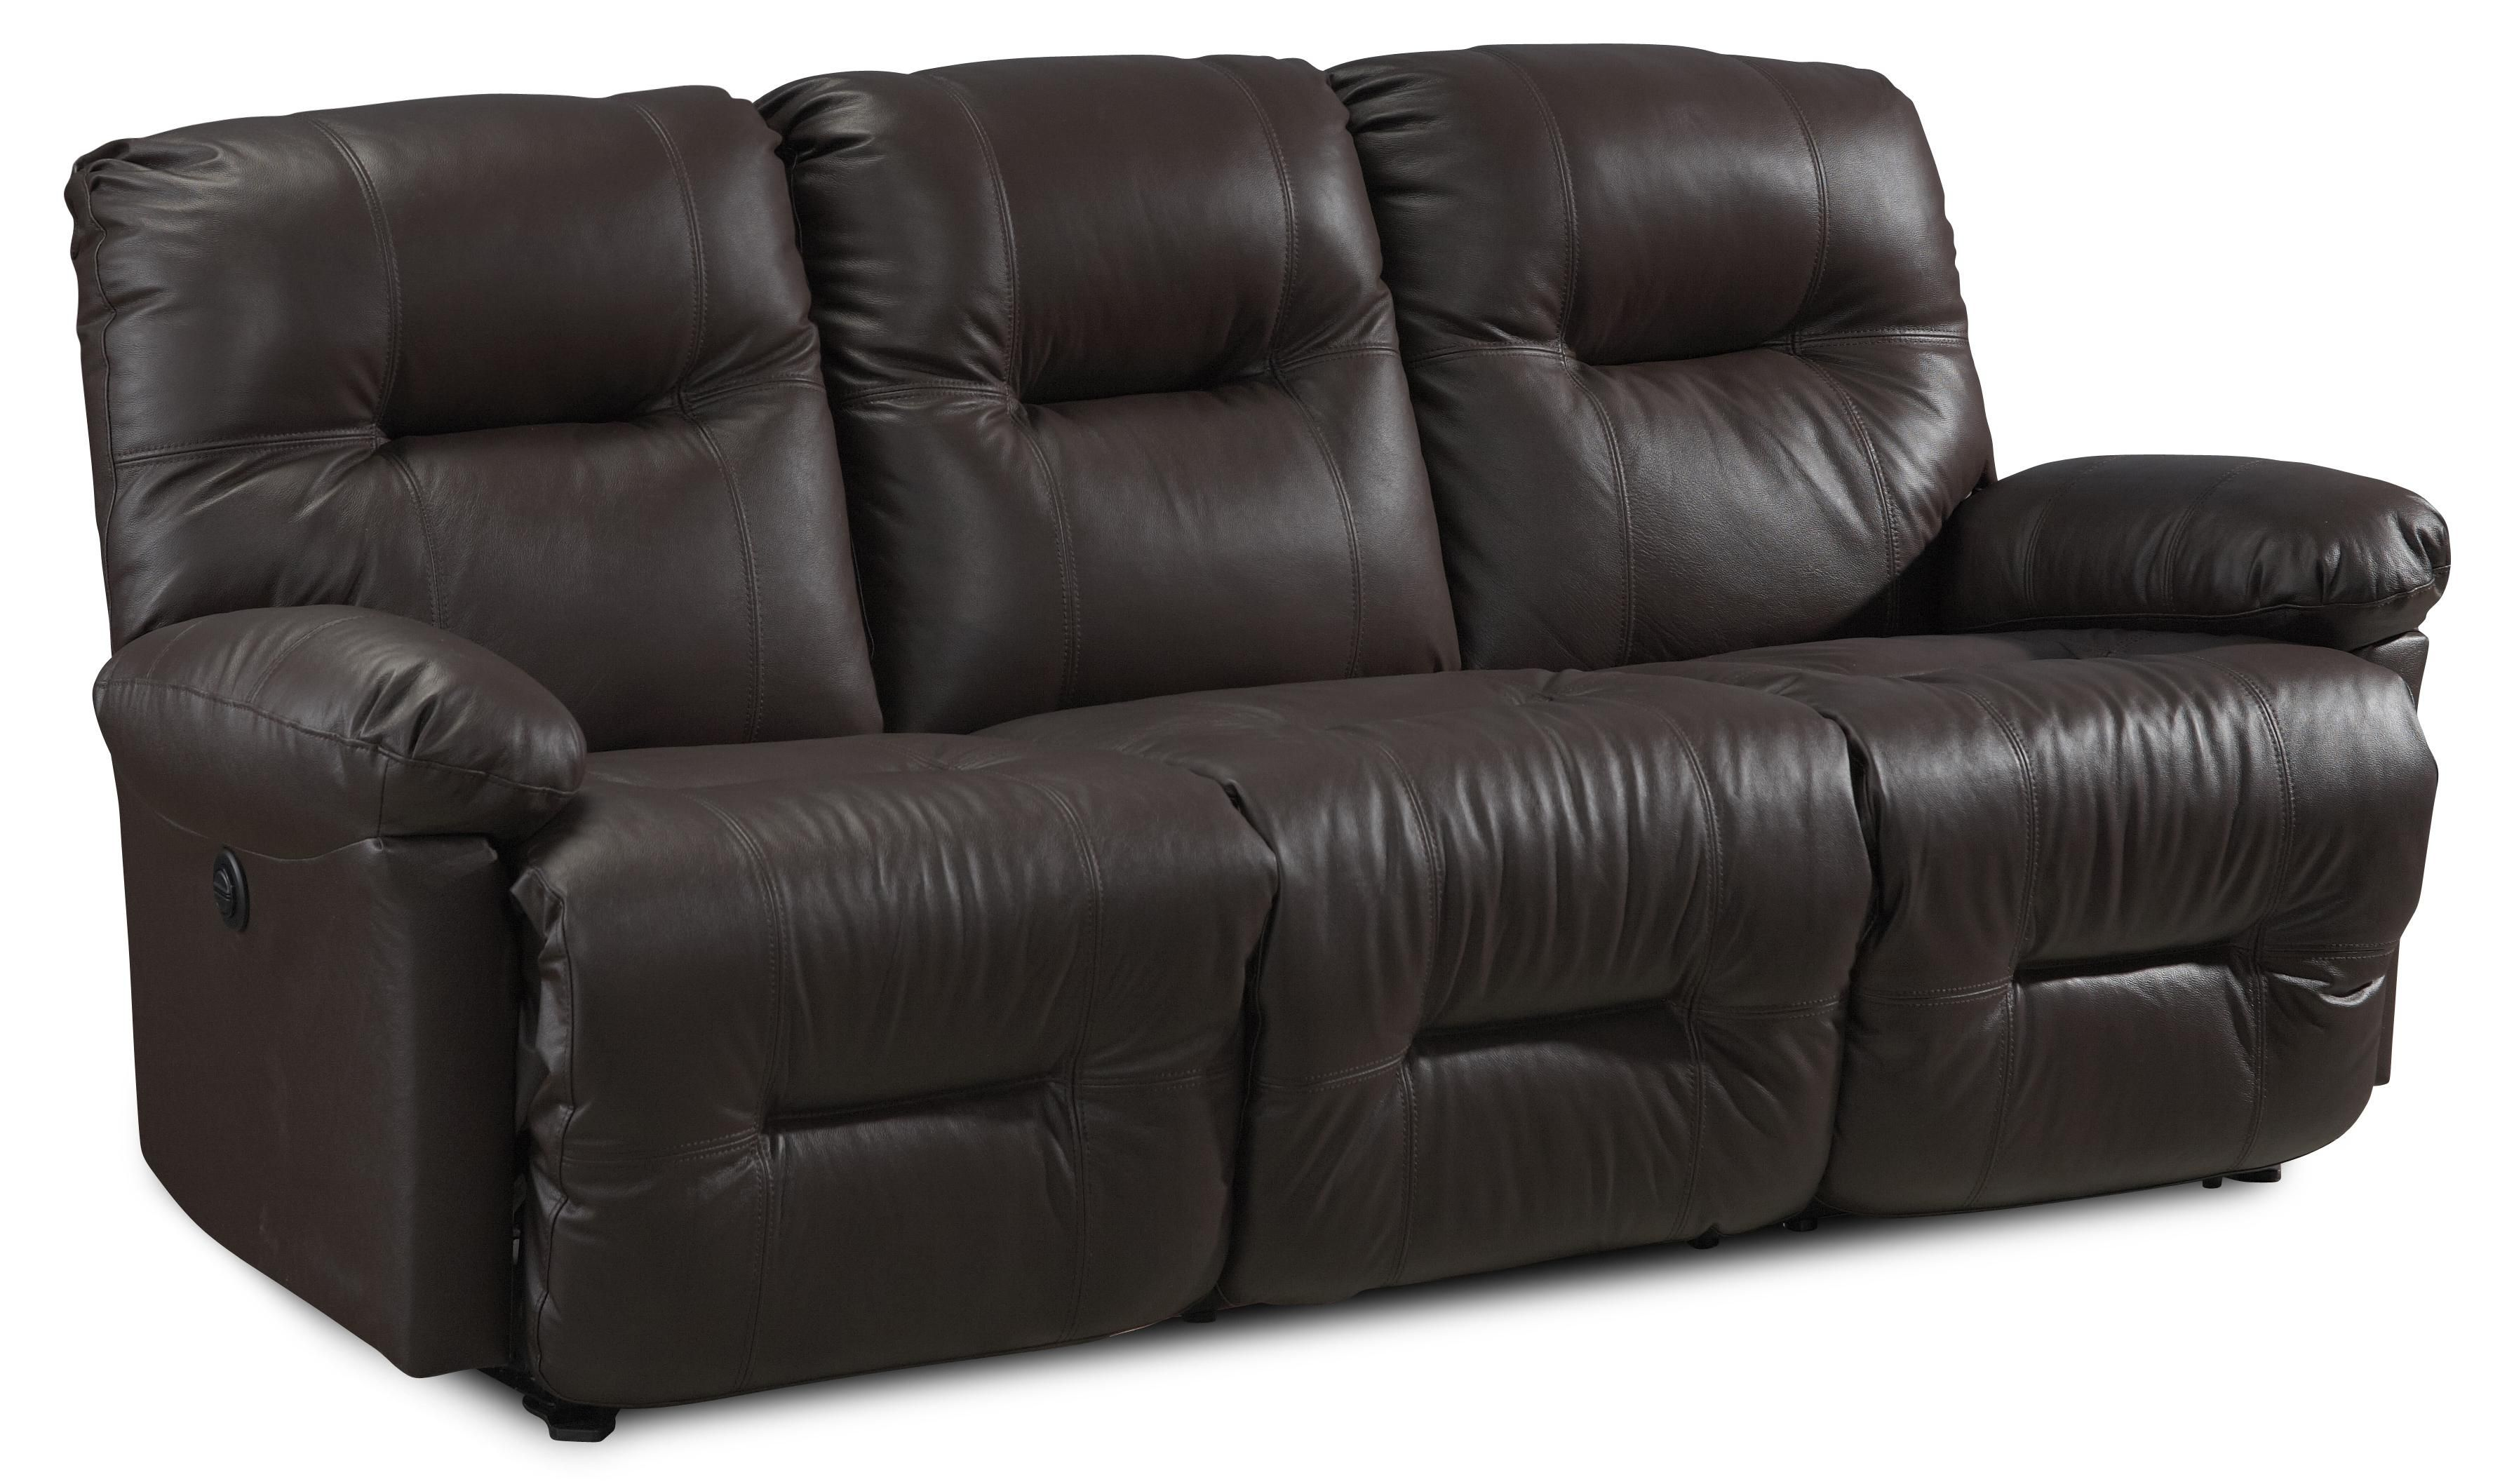 Best Home Furnishings Zaynah Casual Power Motion Sofa with Pillow